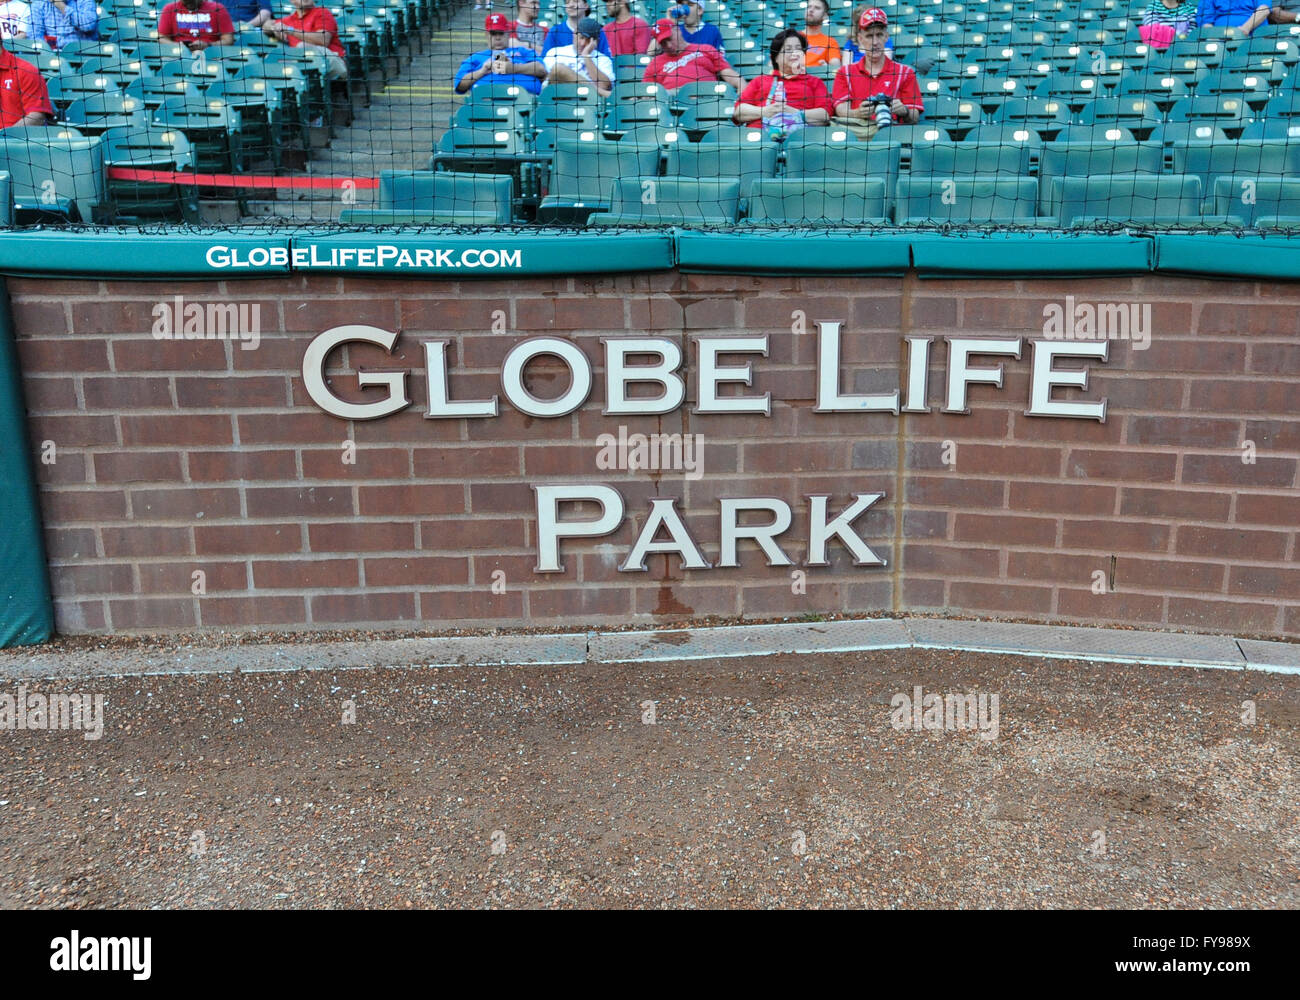 Apr 20 2016 The Wall Behind Home Plate At Globe Life Park Before An